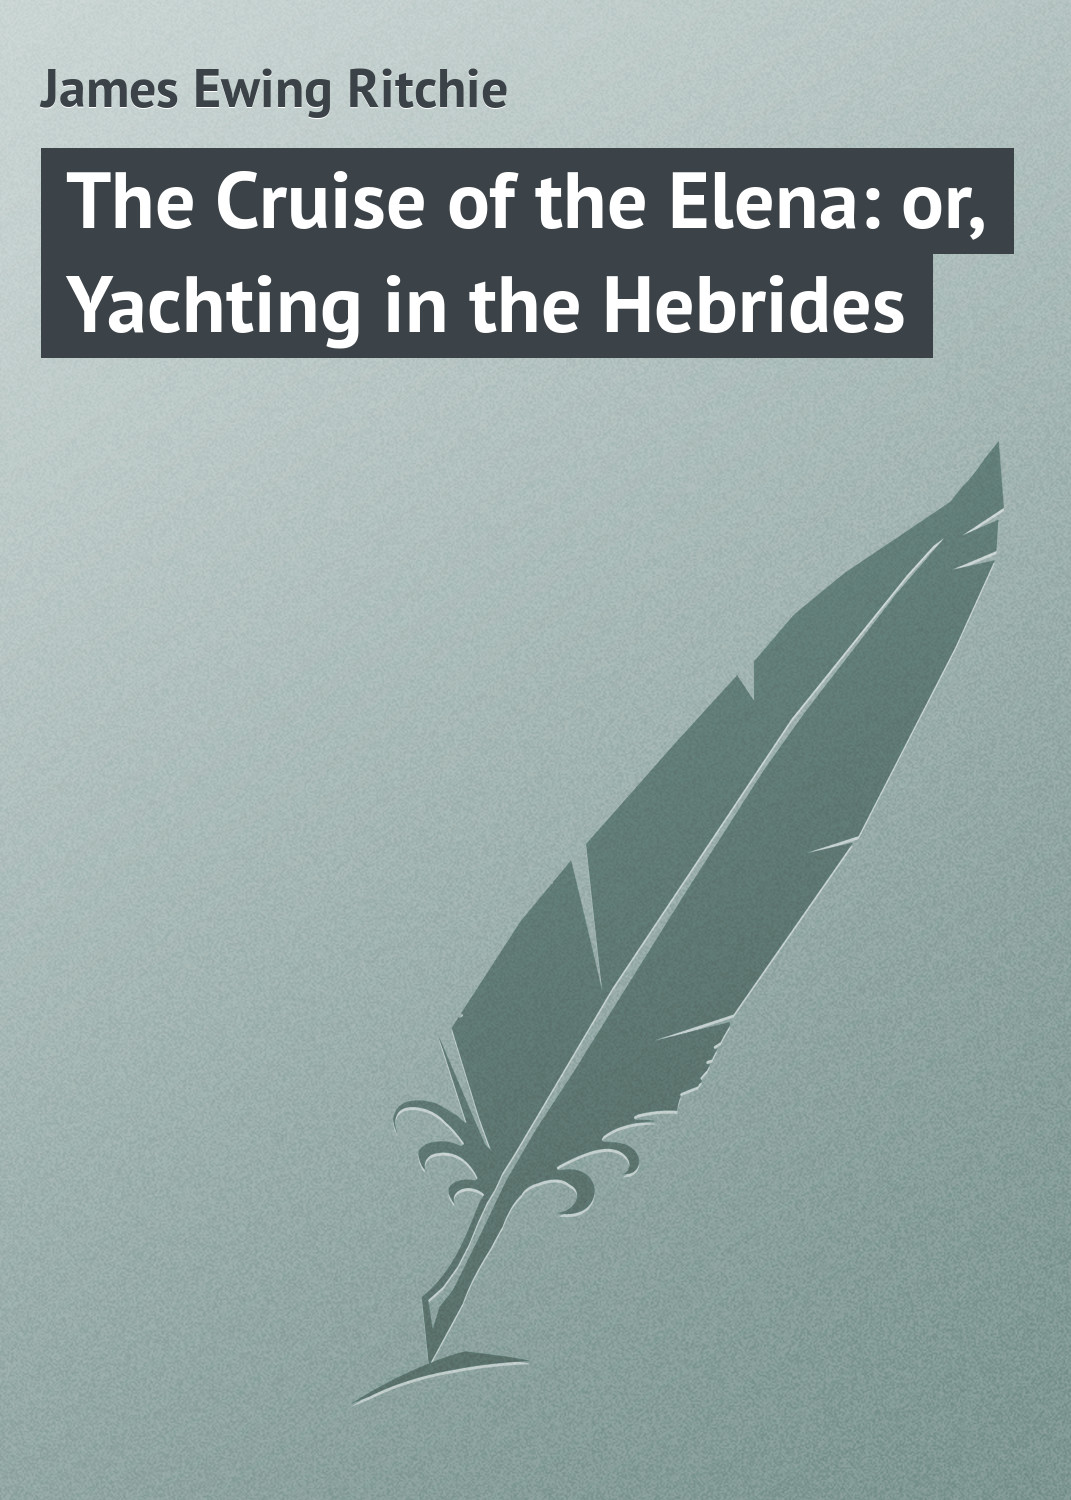 James Ewing Ritchie The Cruise of the Elena: or, Yachting in the Hebrides henry james the europeans